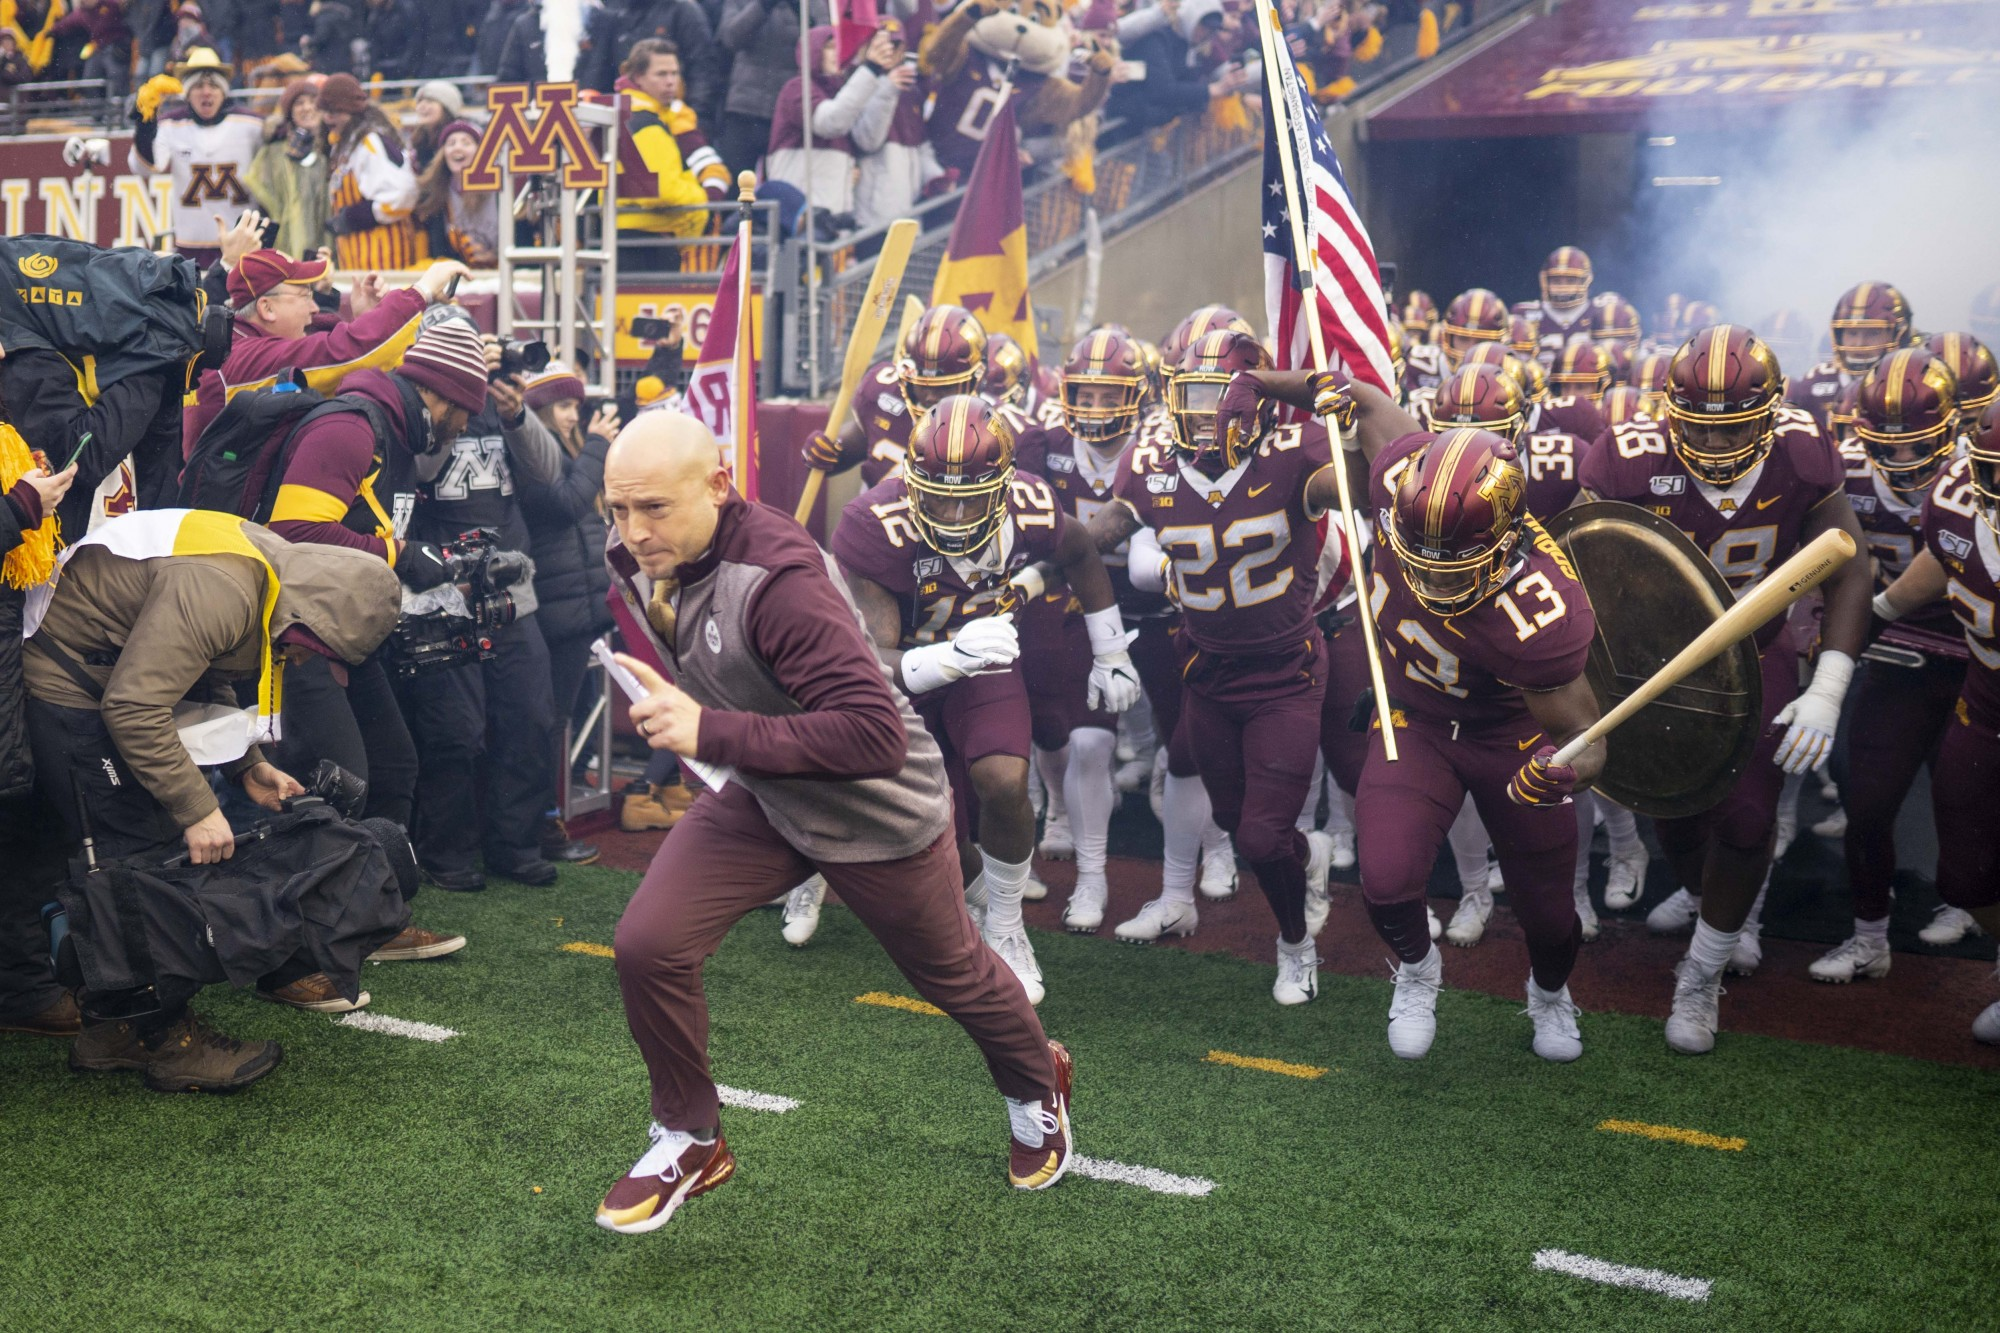 Head Coach P.J. Fleck runs onto the field before the start of the game at TCF Bank Stadium on Saturday, Nov. 30.